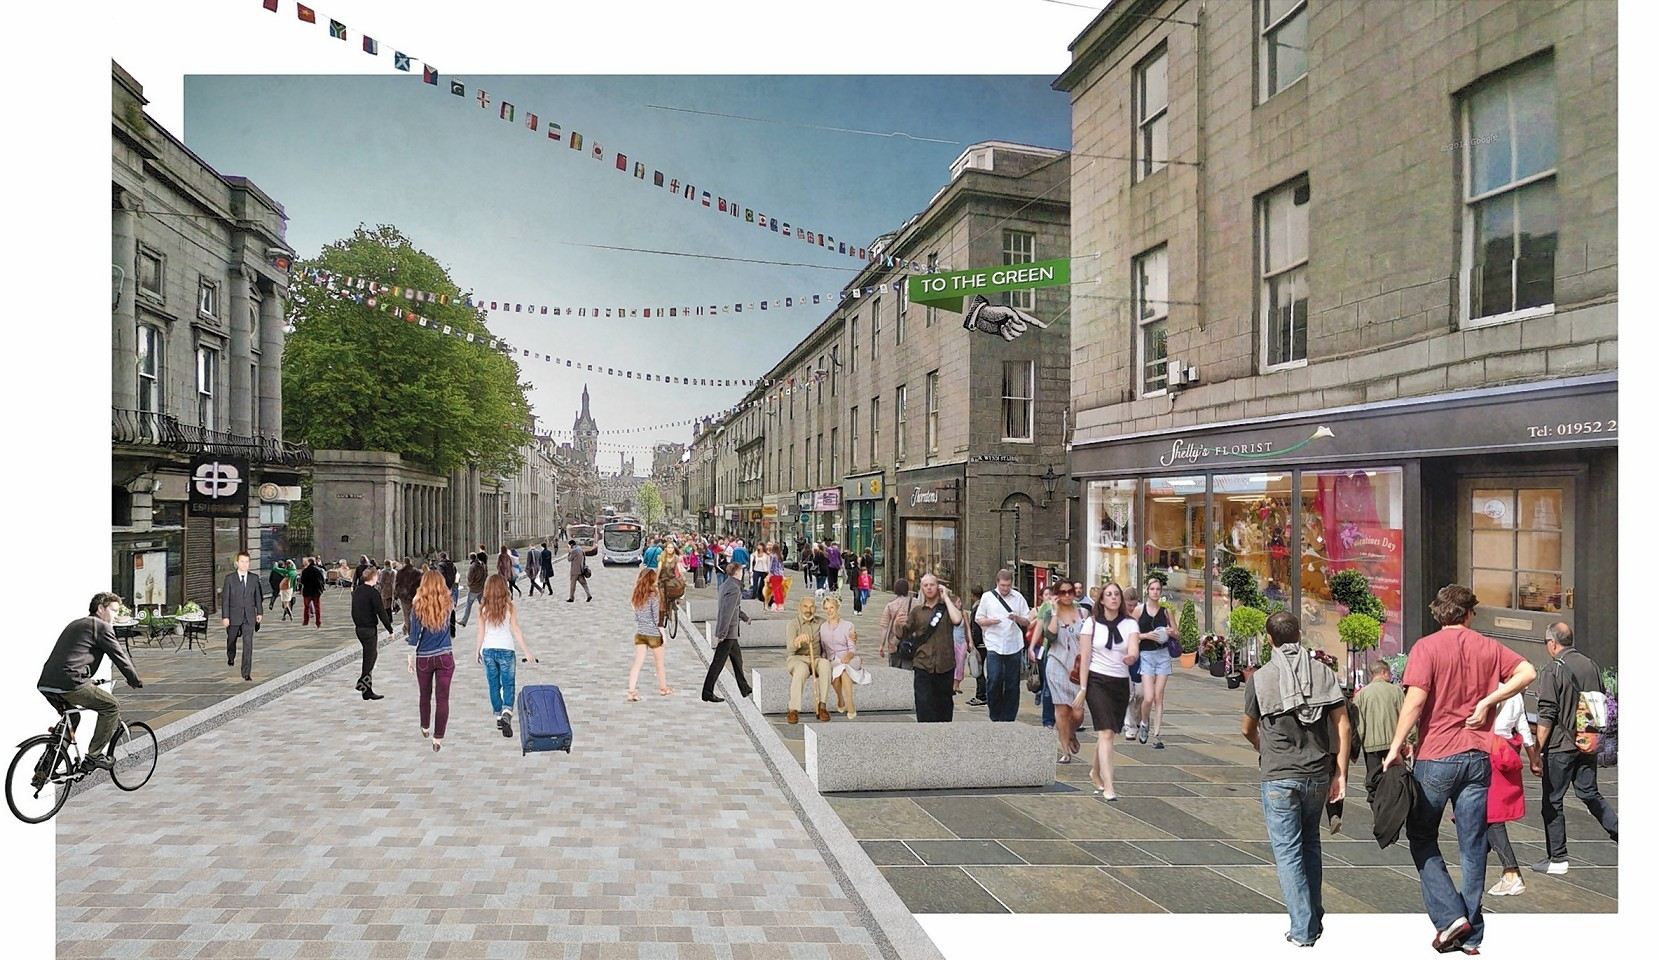 The masterplan aims to revive the city centre